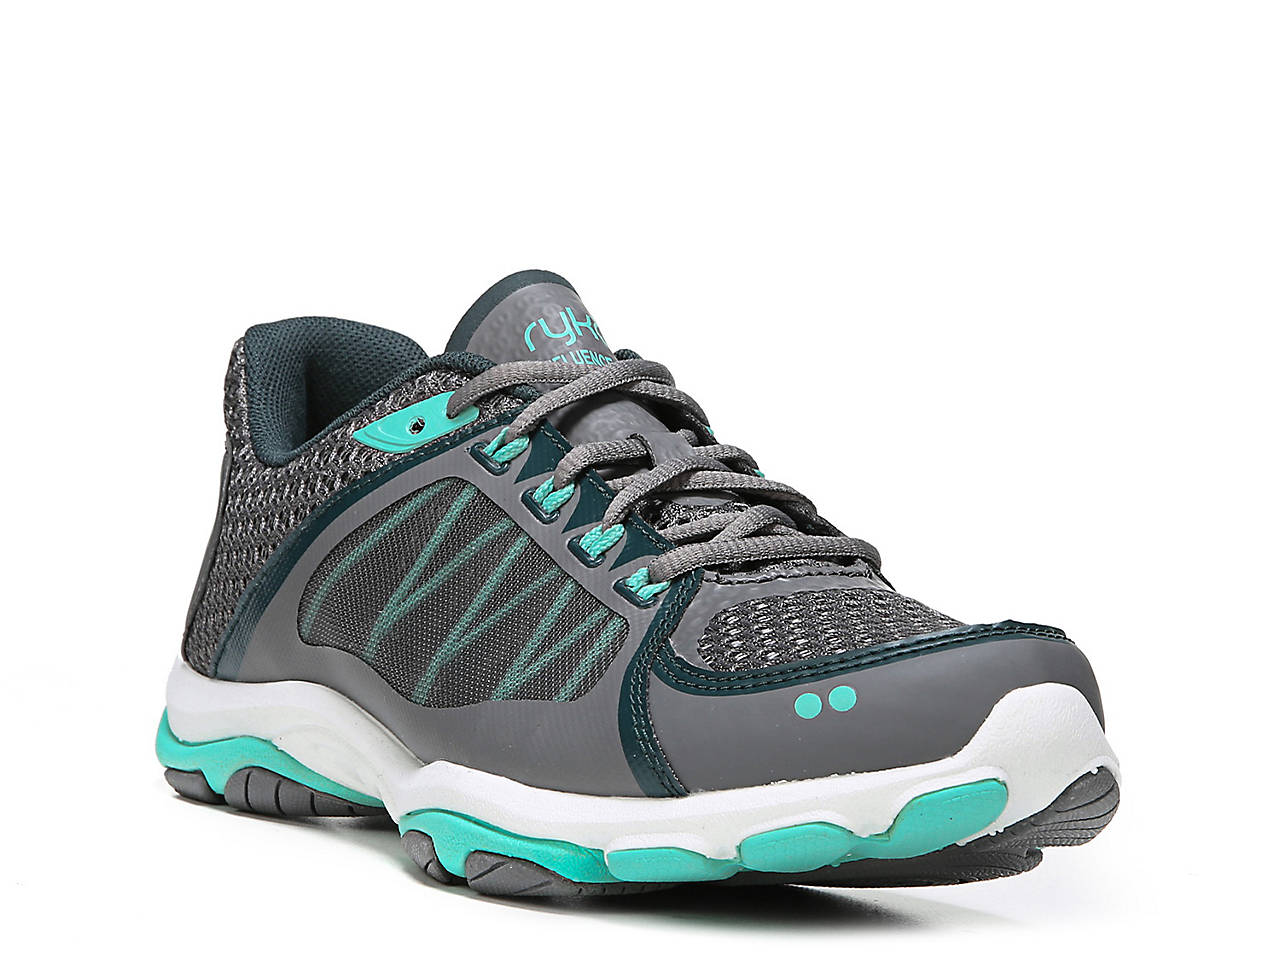 Influence 2.5 Sneakers by Ryka® discount best cheap wide range of free shipping low shipping fee cSJRXE